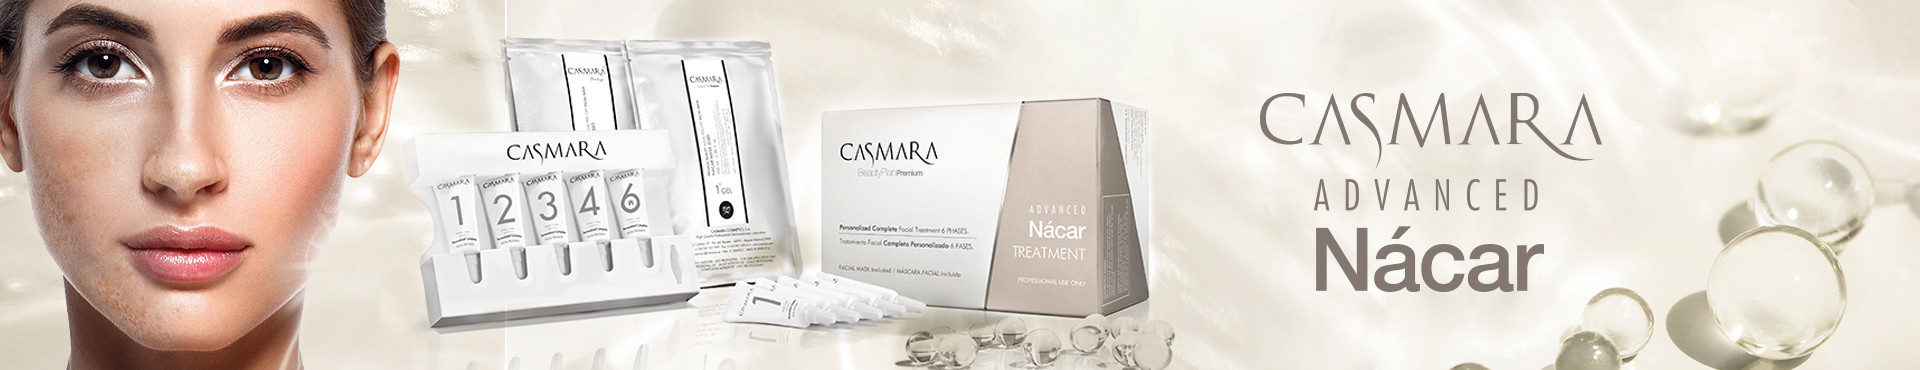 CASMARA ADVANCED NÁCAR